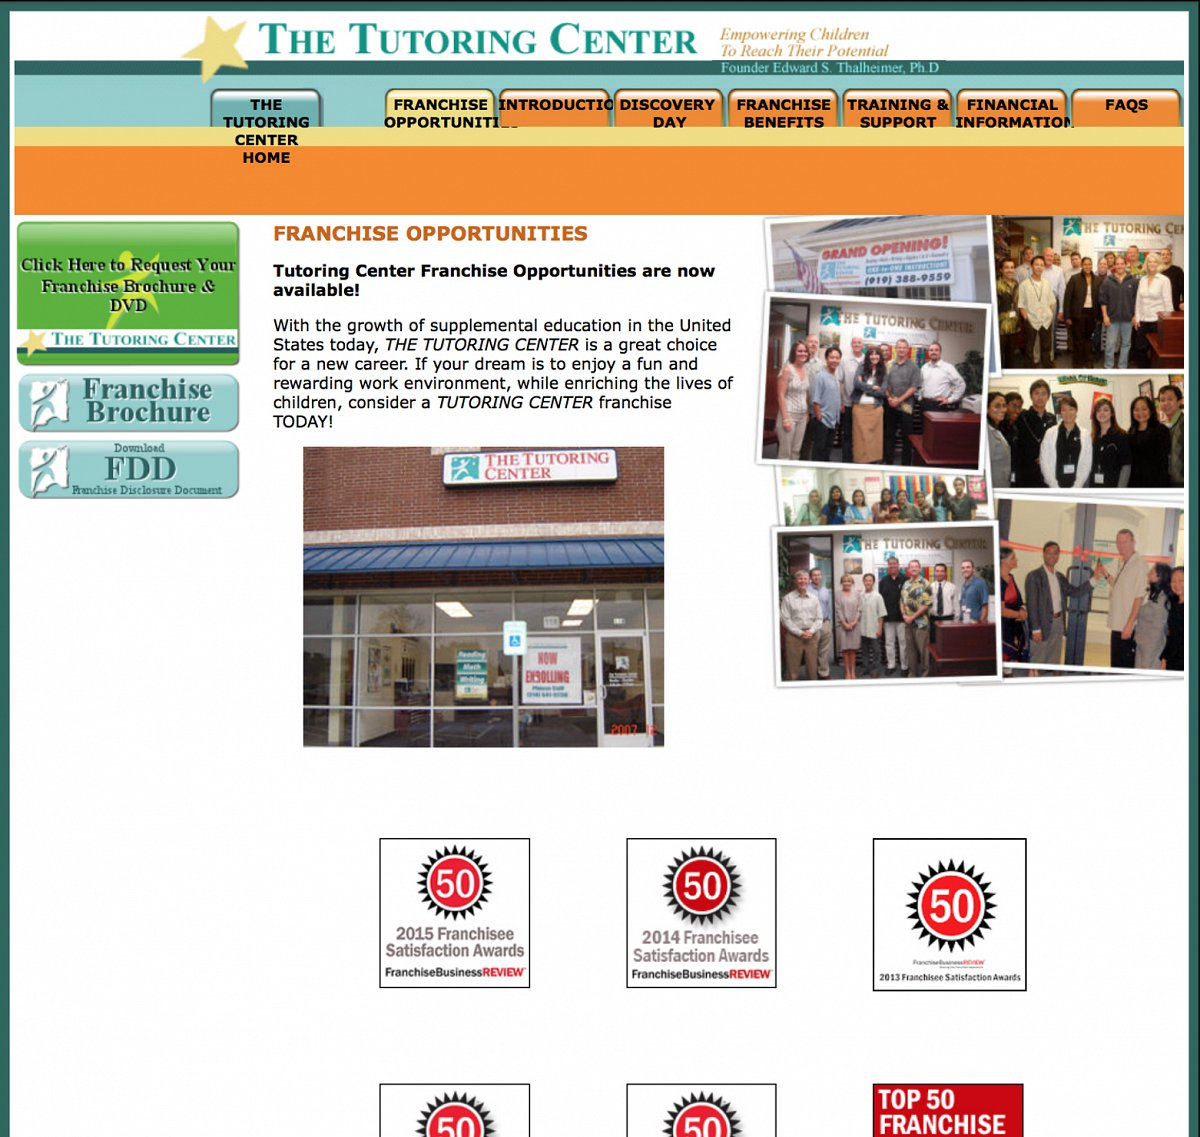 Previous franchise landing page for The Tutoring Center